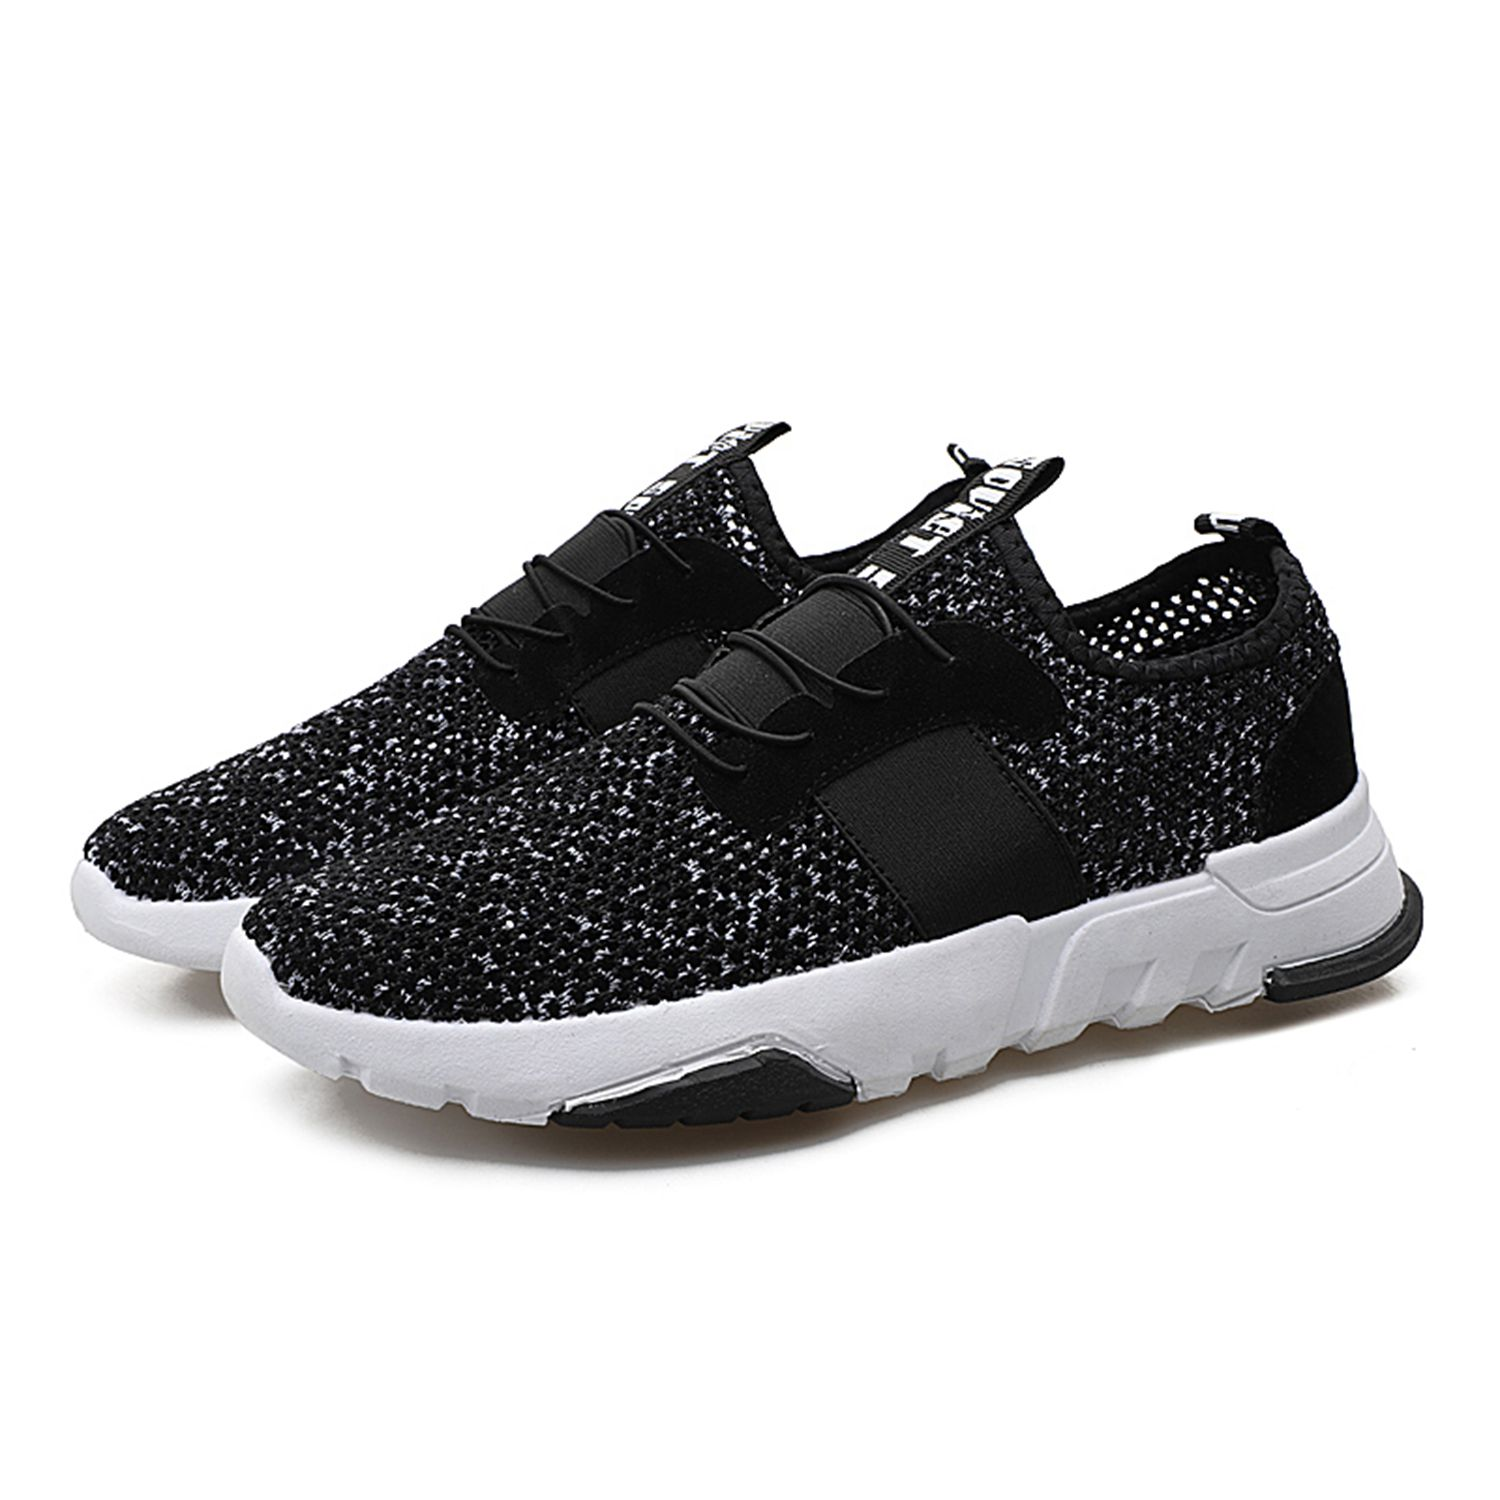 Marche Baskets En Chaussures Hommes Doux Air D'été Sport Black Portable Respirant Plein blue W De gray Mesh Confort Jogging Run xq7IRYfw